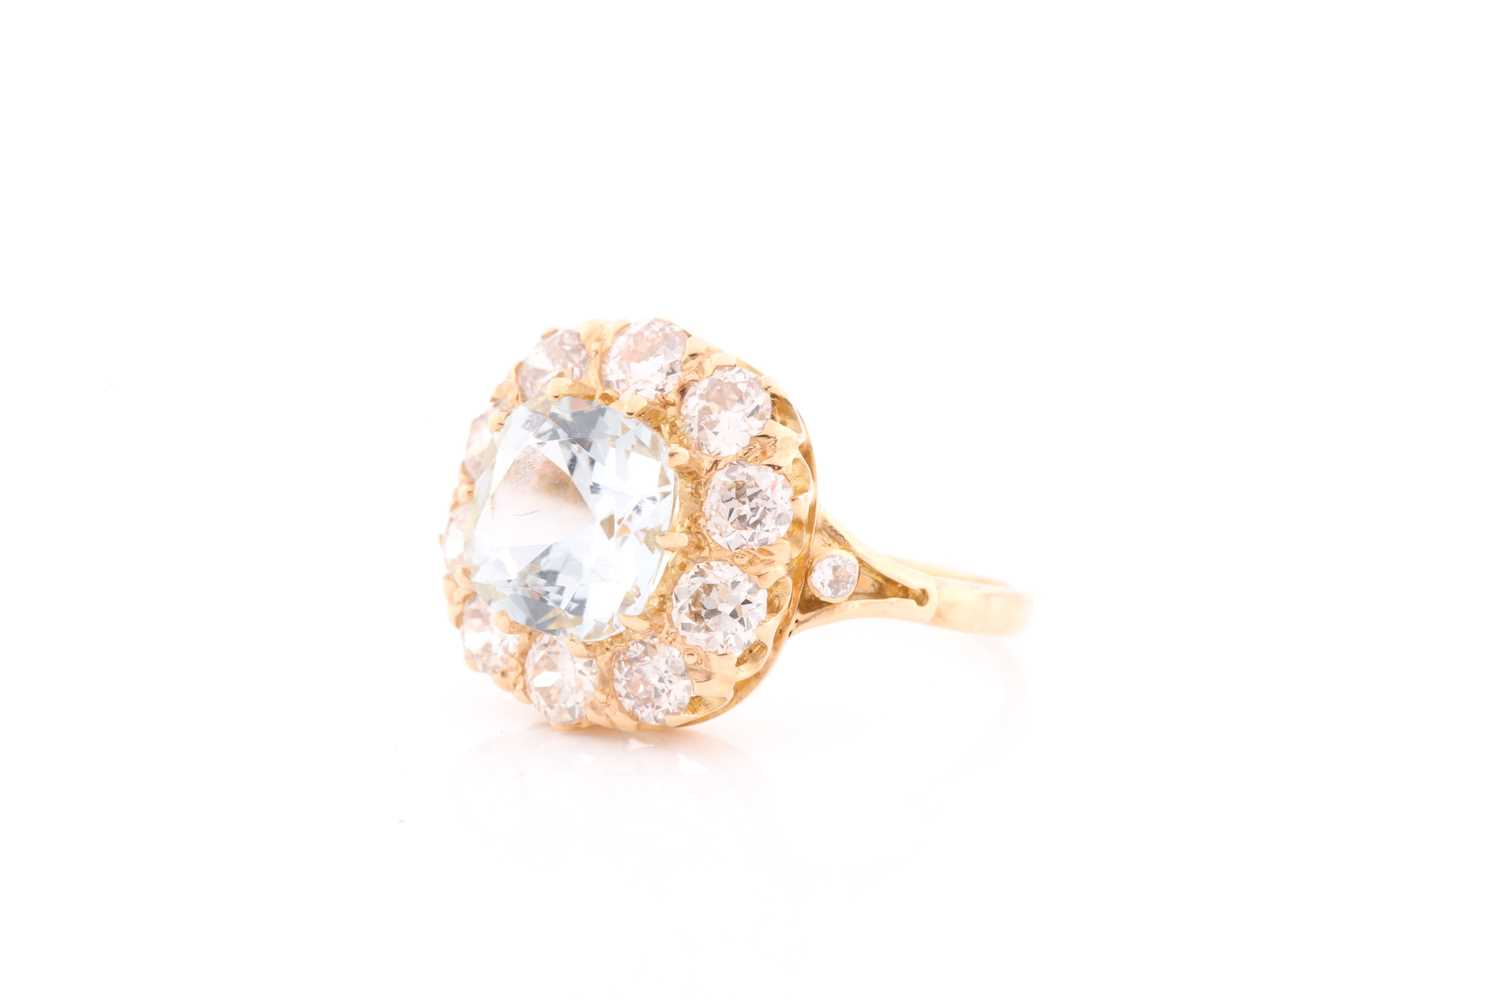 An 18ct yellow gold, diamond, and aquamarine cluster ring, set with a cushion-cut aquamarine of - Image 4 of 4